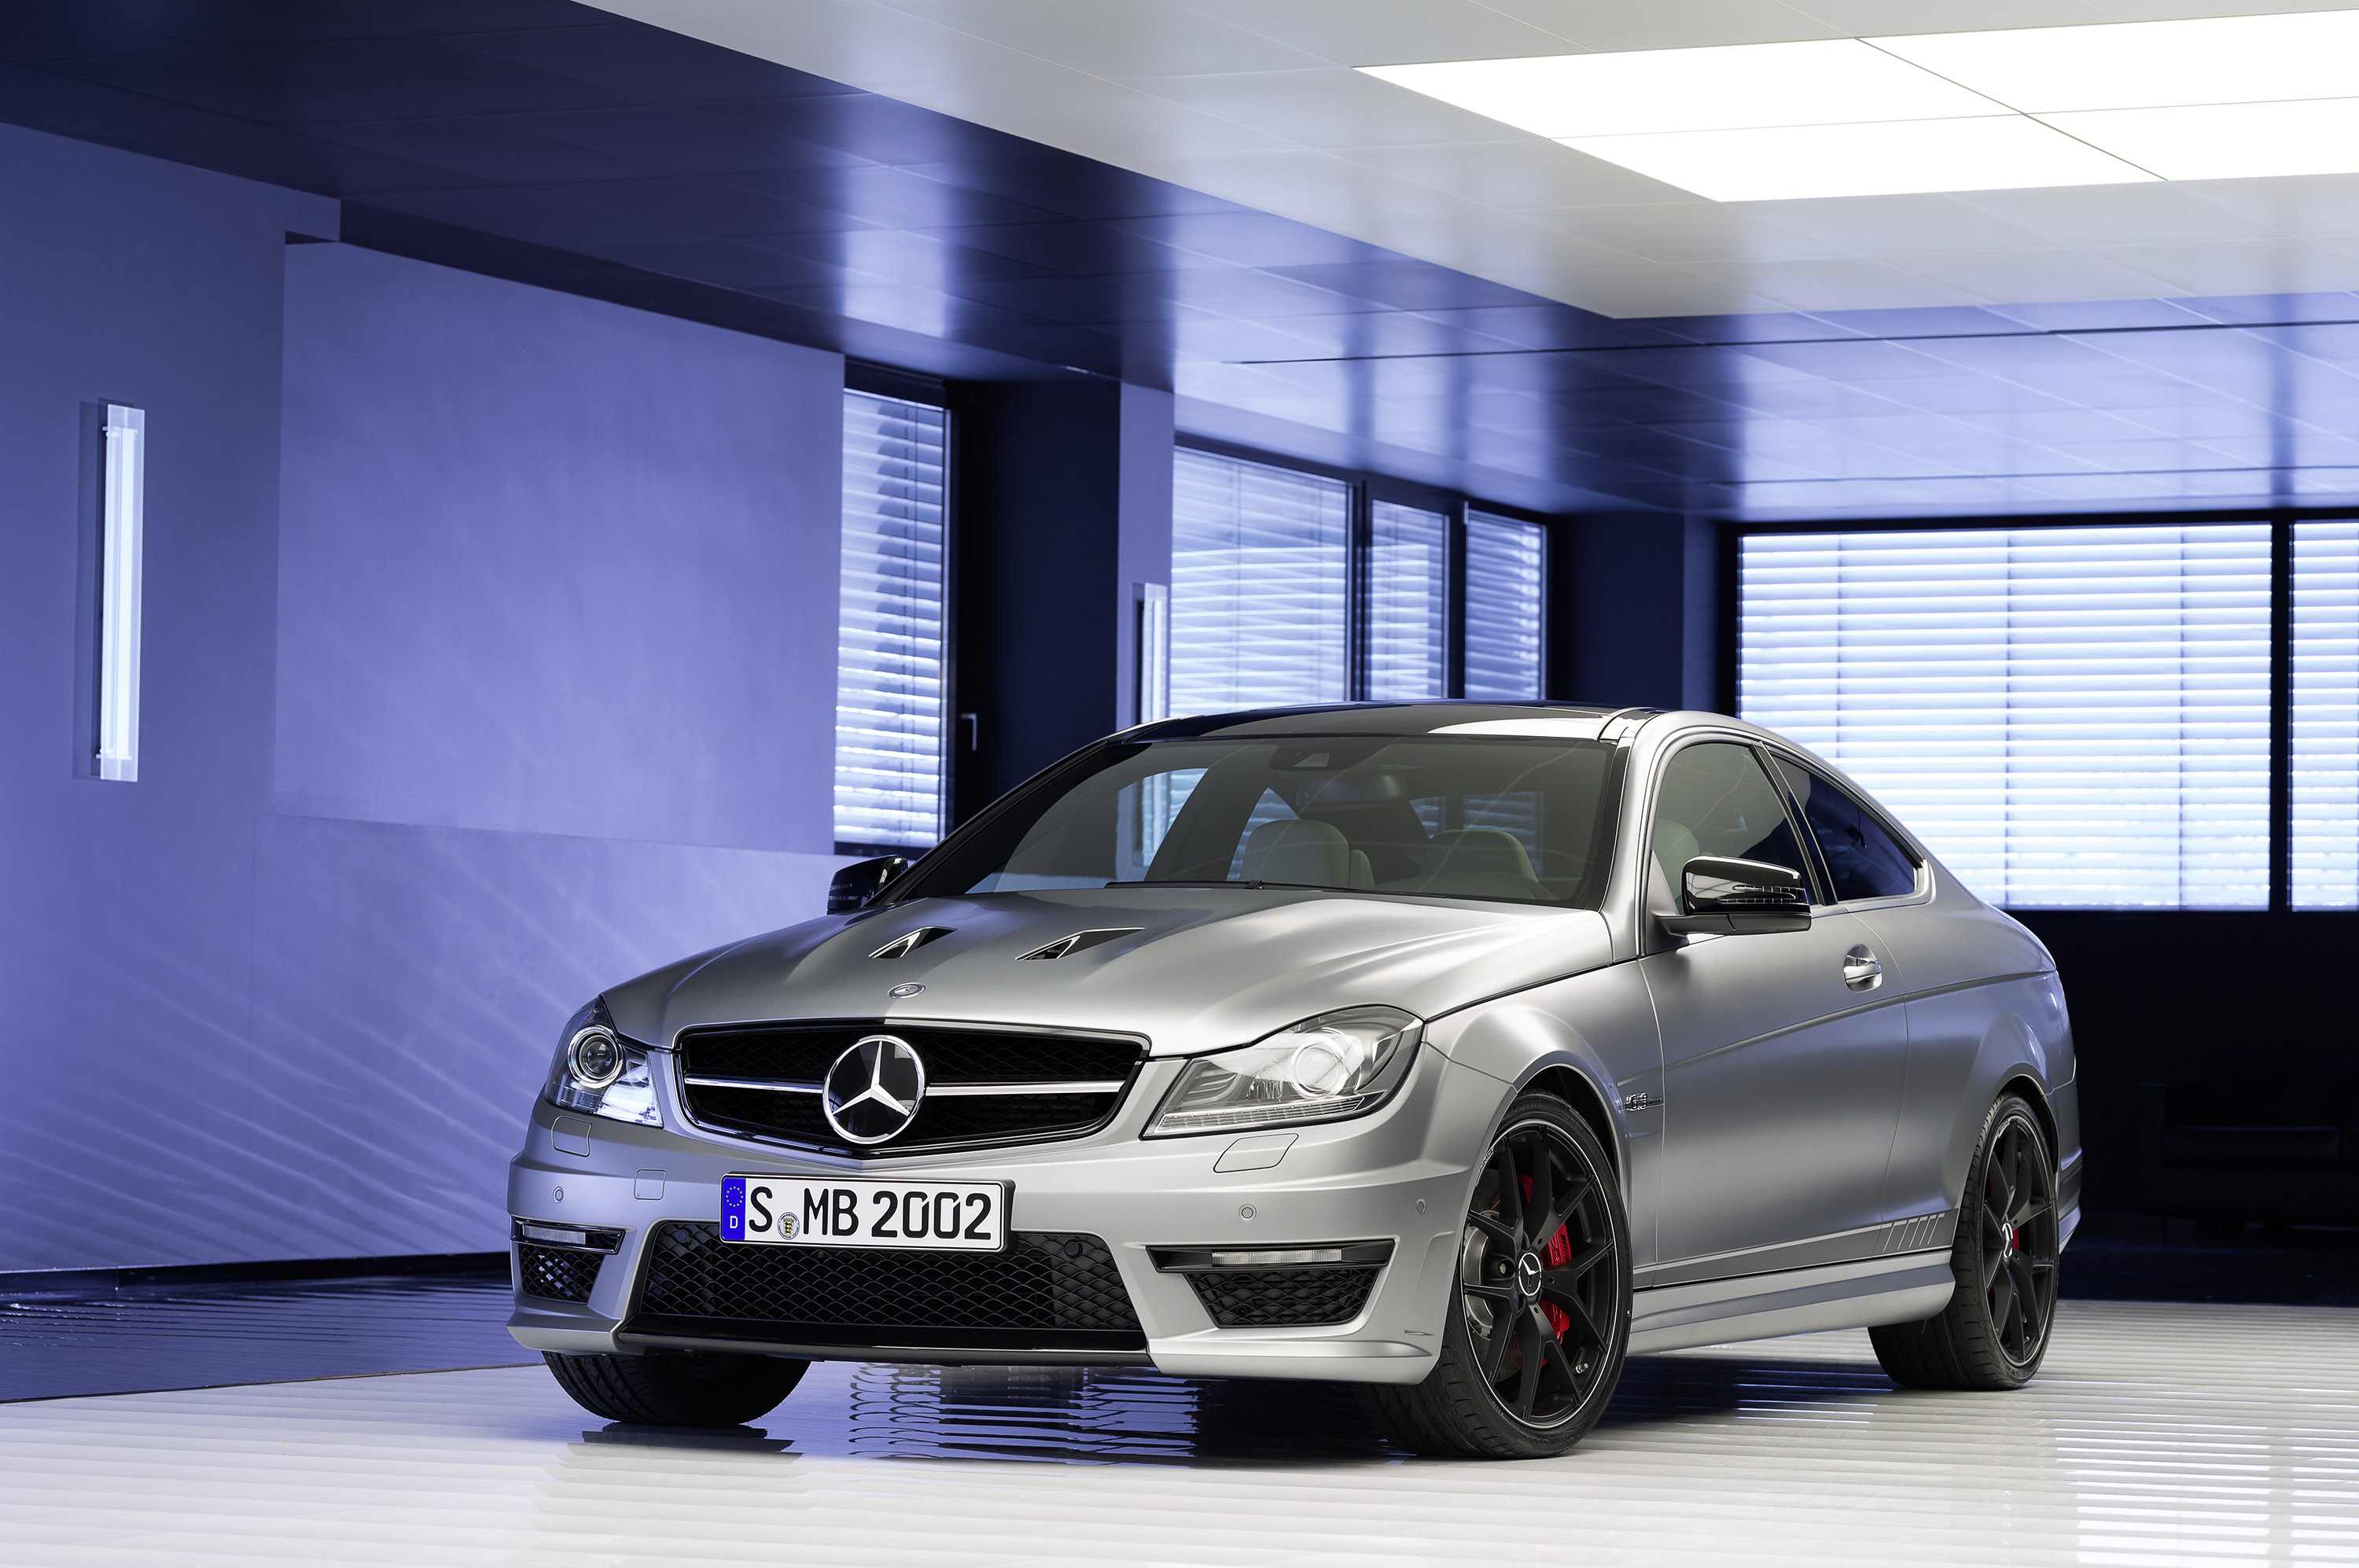 2013 Mercedes-Benz C 63 AMG Edition 507